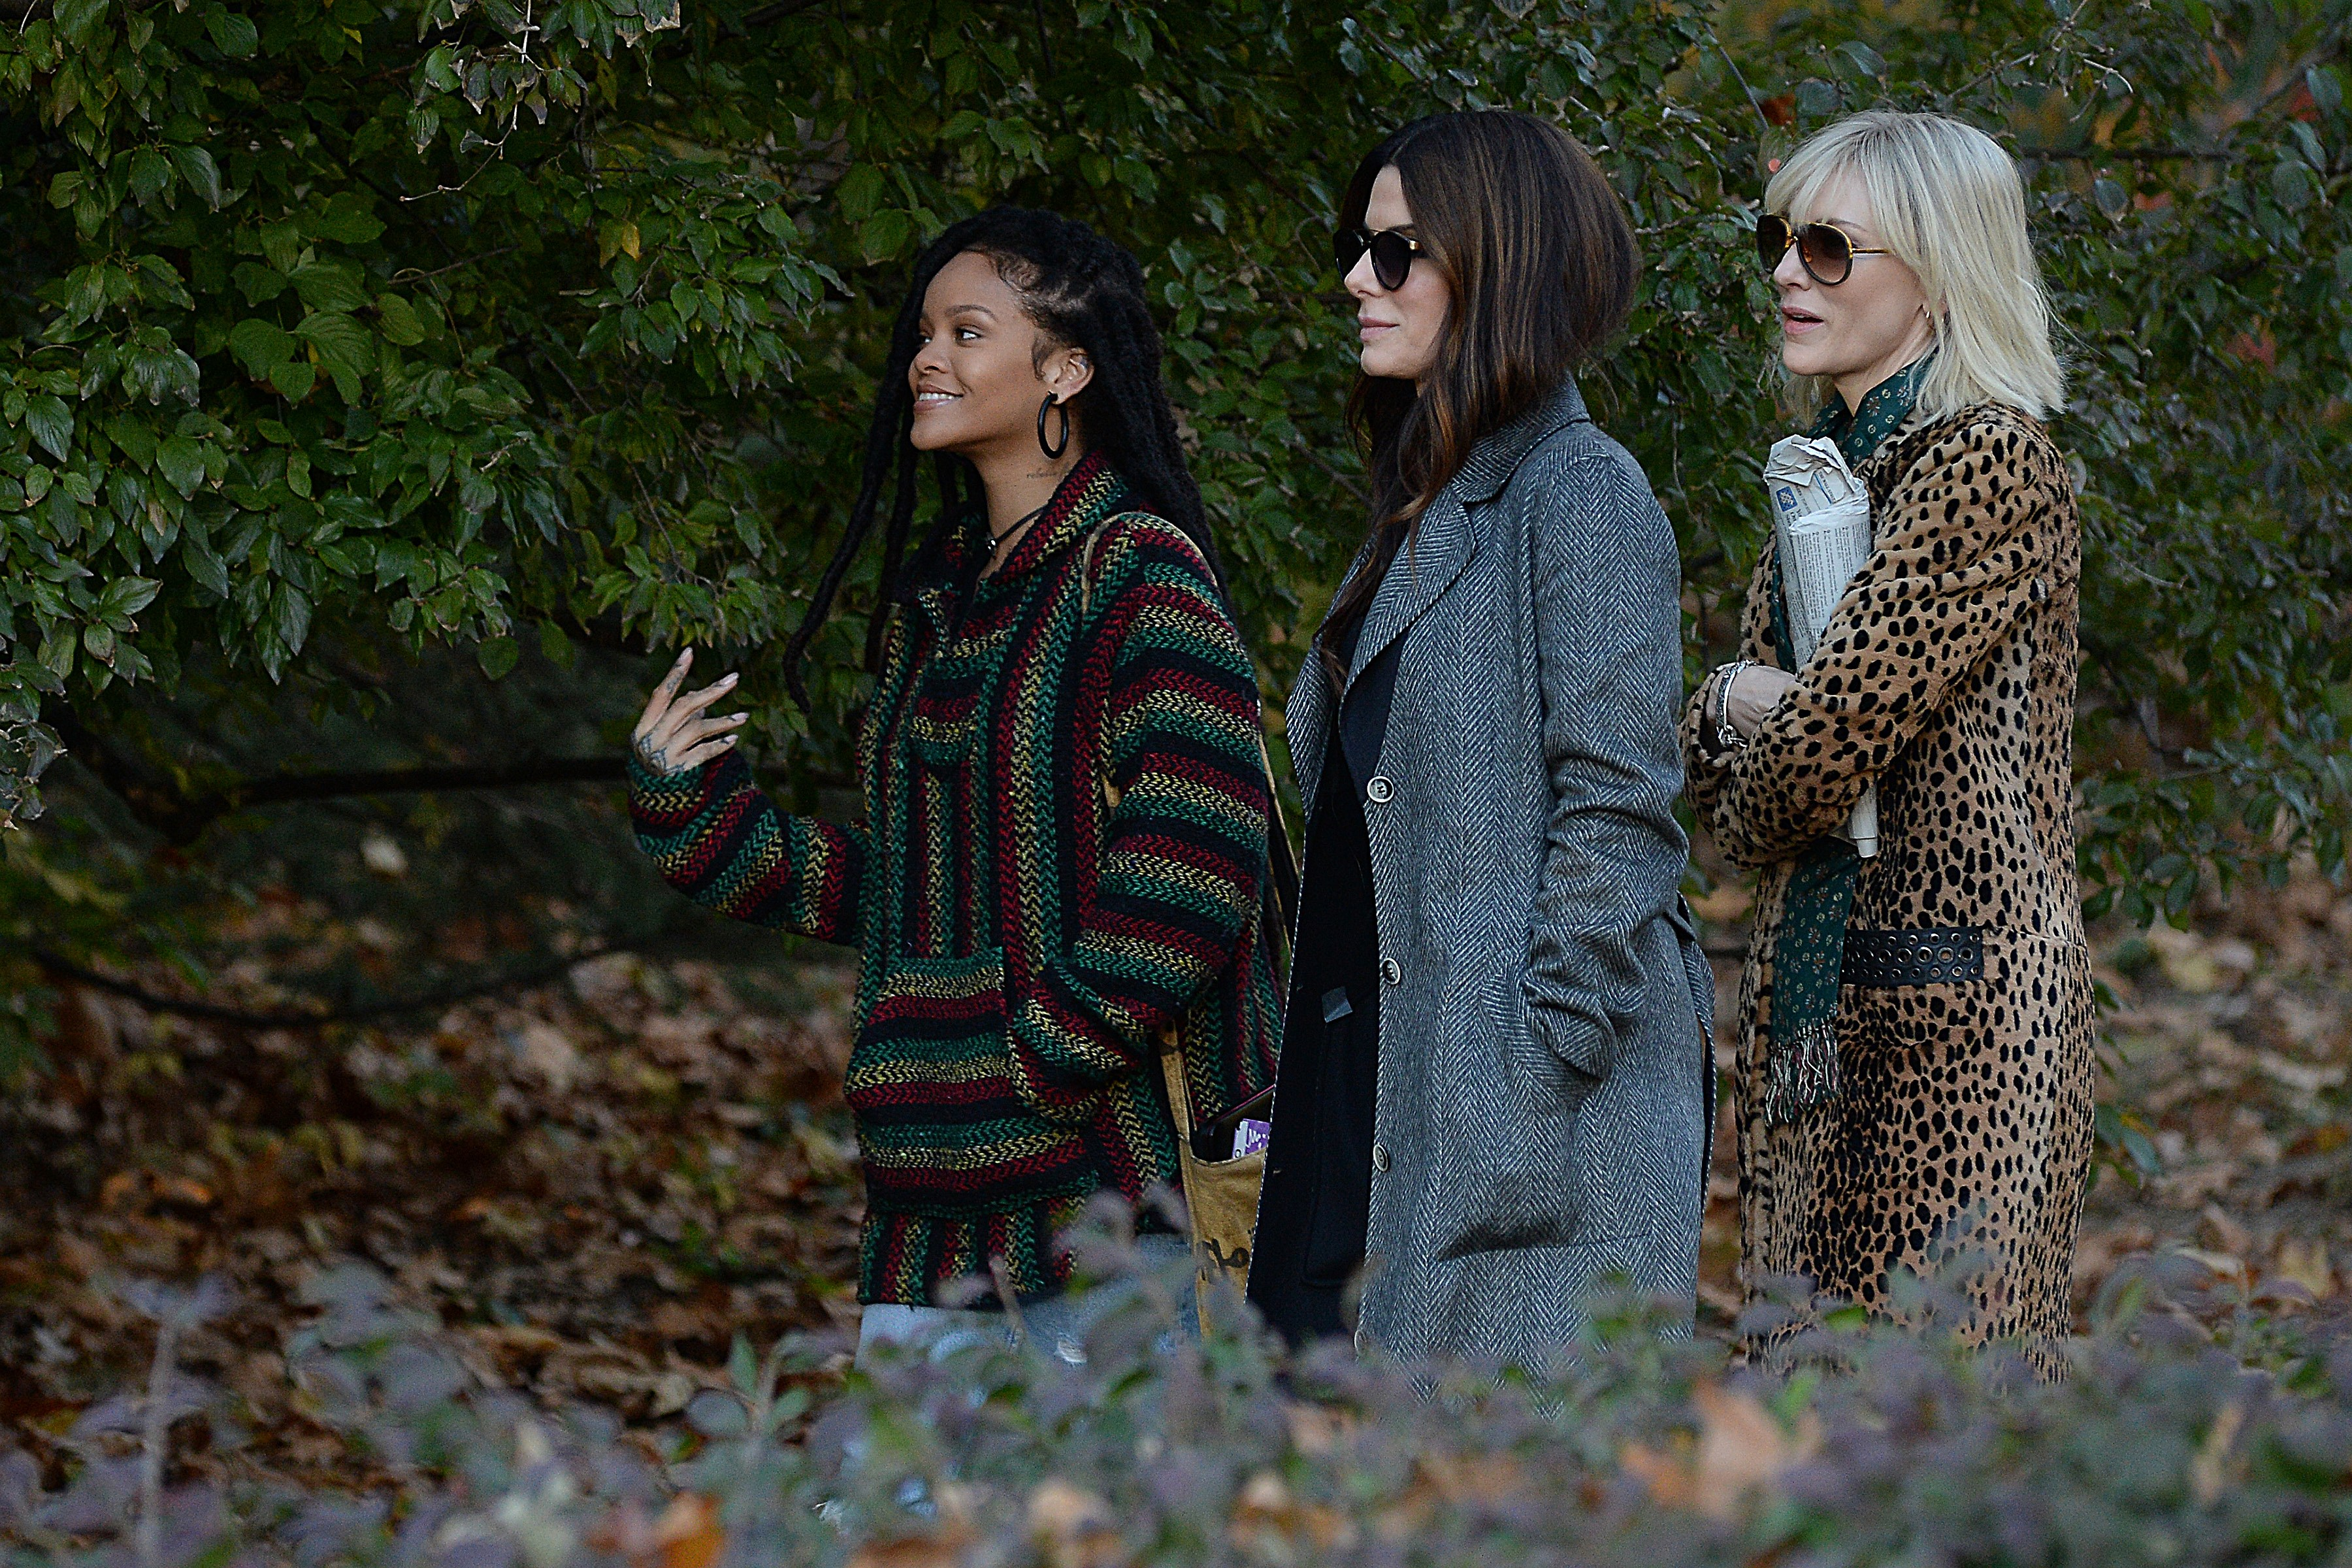 Photo © 2016 Splash News/The Grosby Group New York, November 07, 2016 Pop star turned actress, Rihanna, on-set with veteran actresses, Cate Blanchett and Sandra Bullock, in NYC. The trio are currently in the works on Ocean